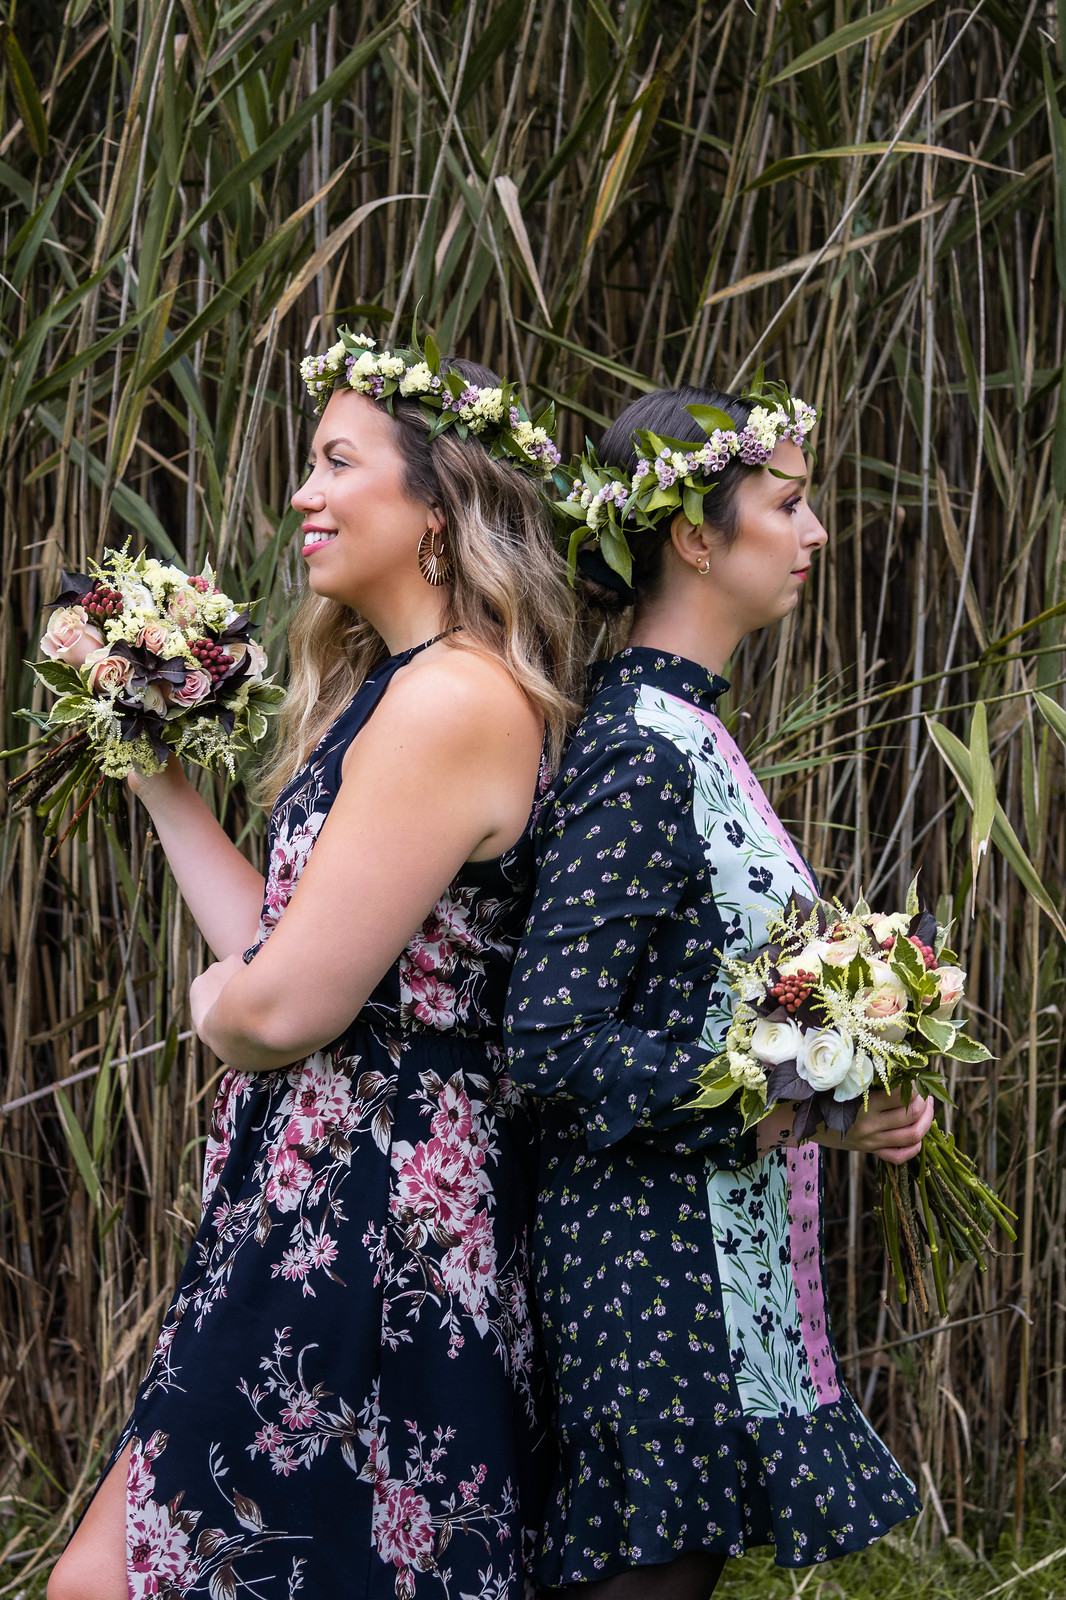 Fall Flower Photoshoot Inspiration | Bohemian Brides | Flower Shop Photos